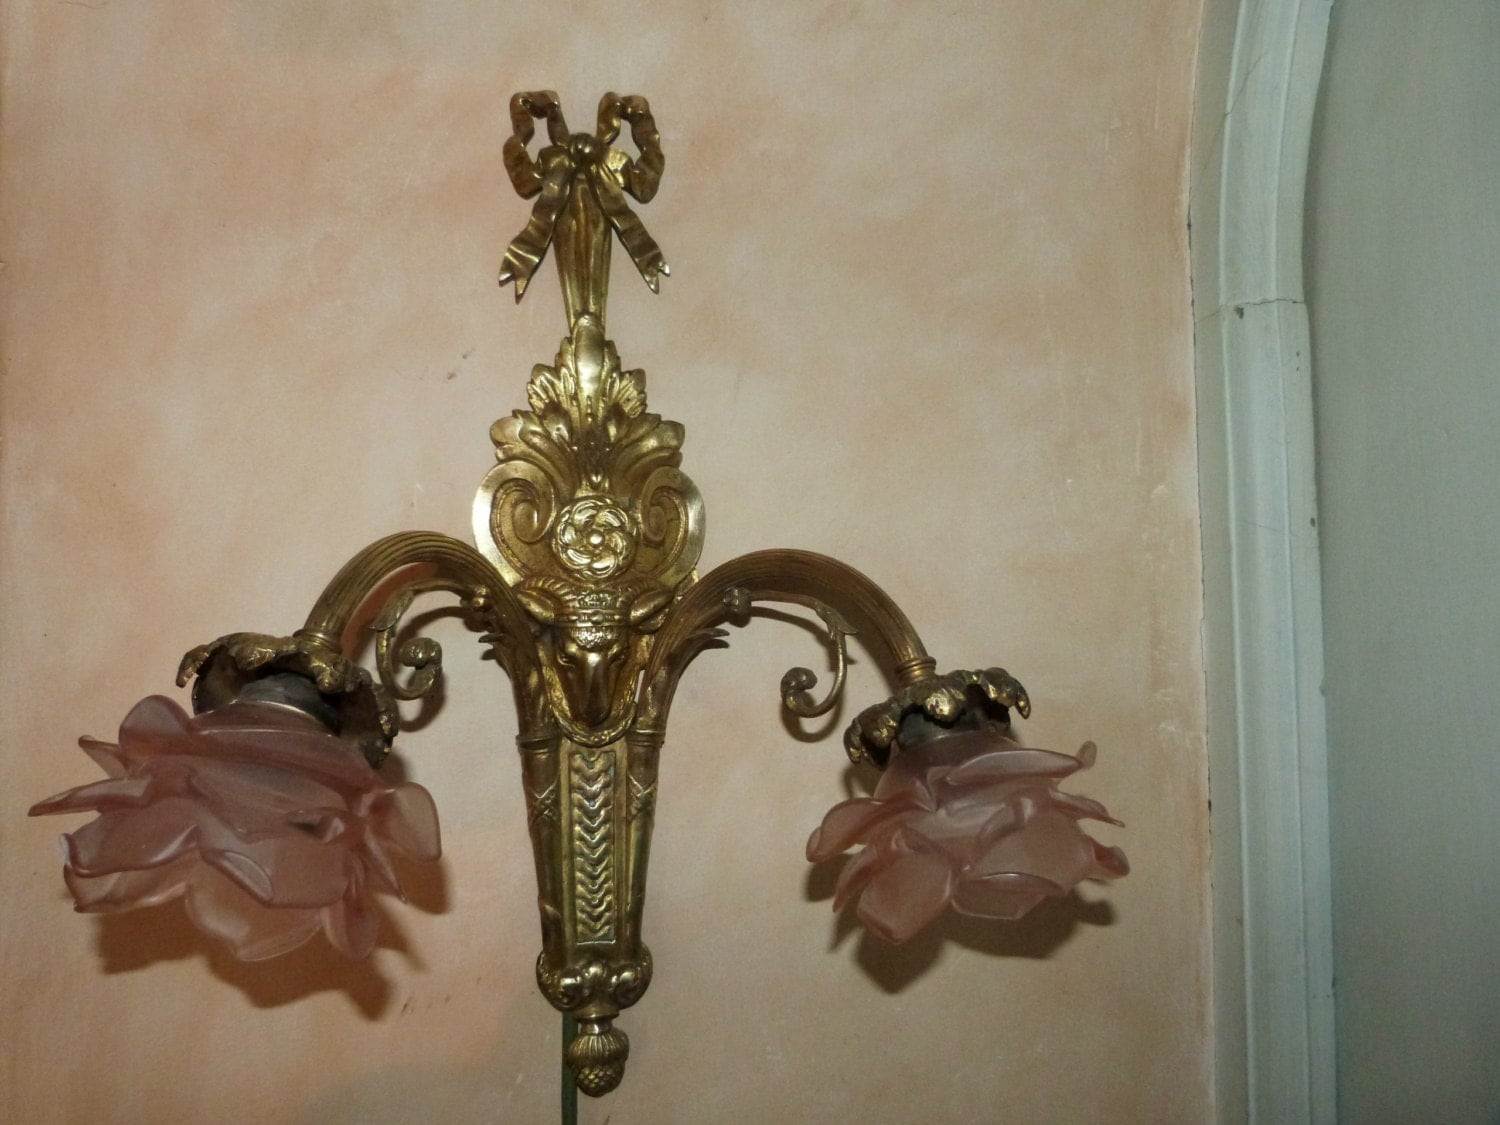 Antique French bronze wall sconce light by MyFrenchAntiqueShop